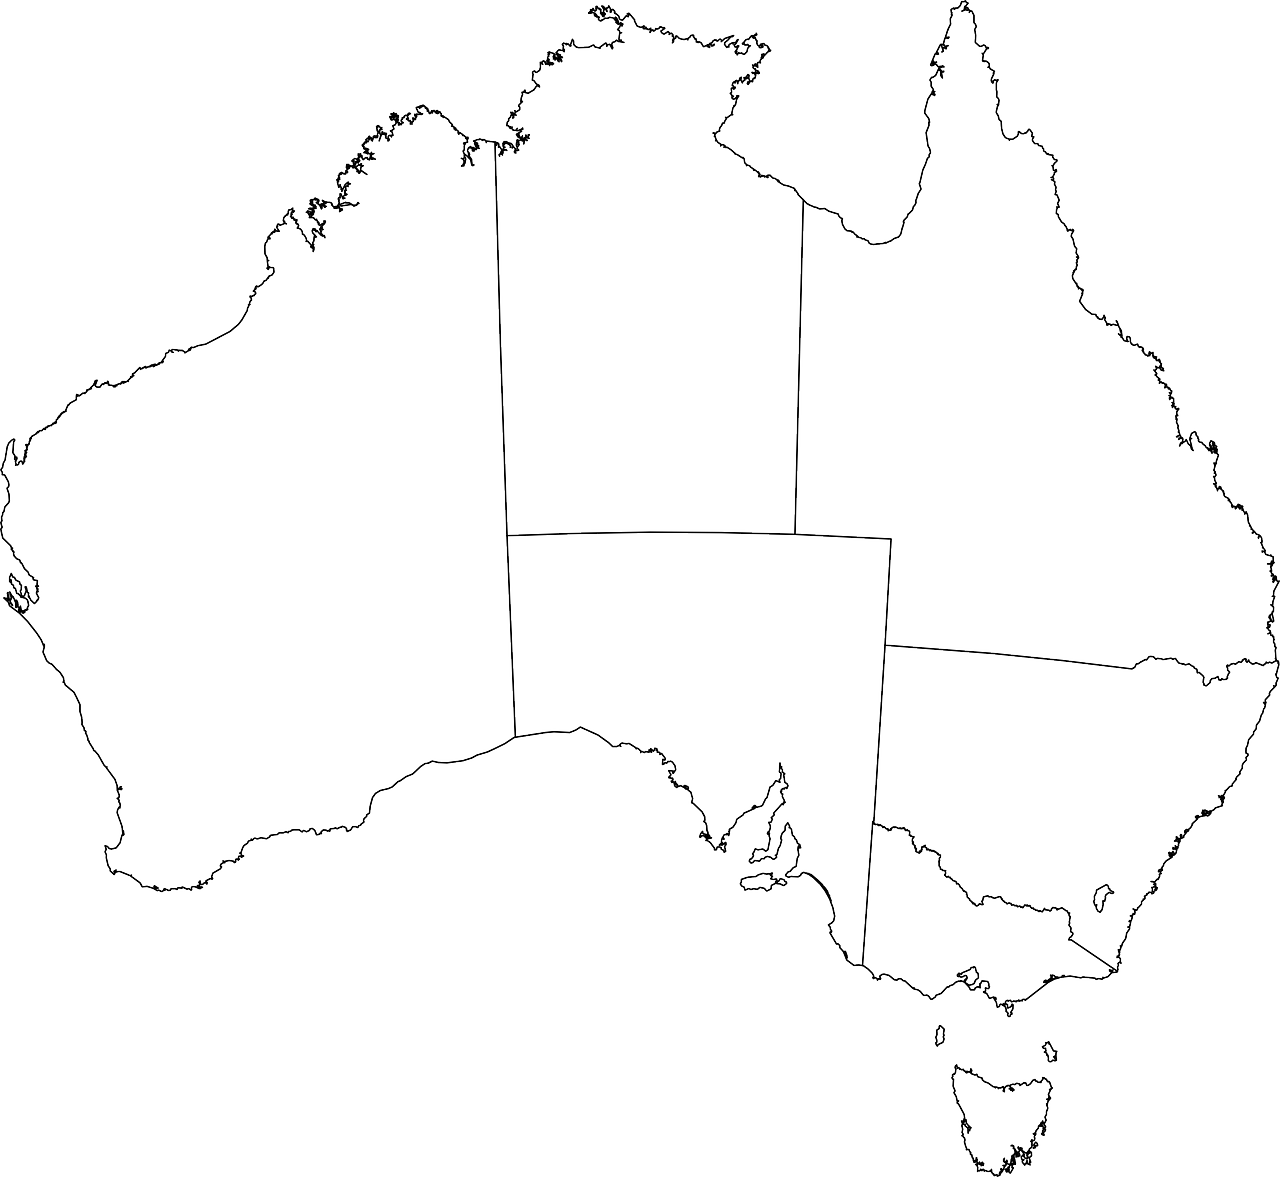 Australia,continent,geography,map,coastline boundaries - free photo ...